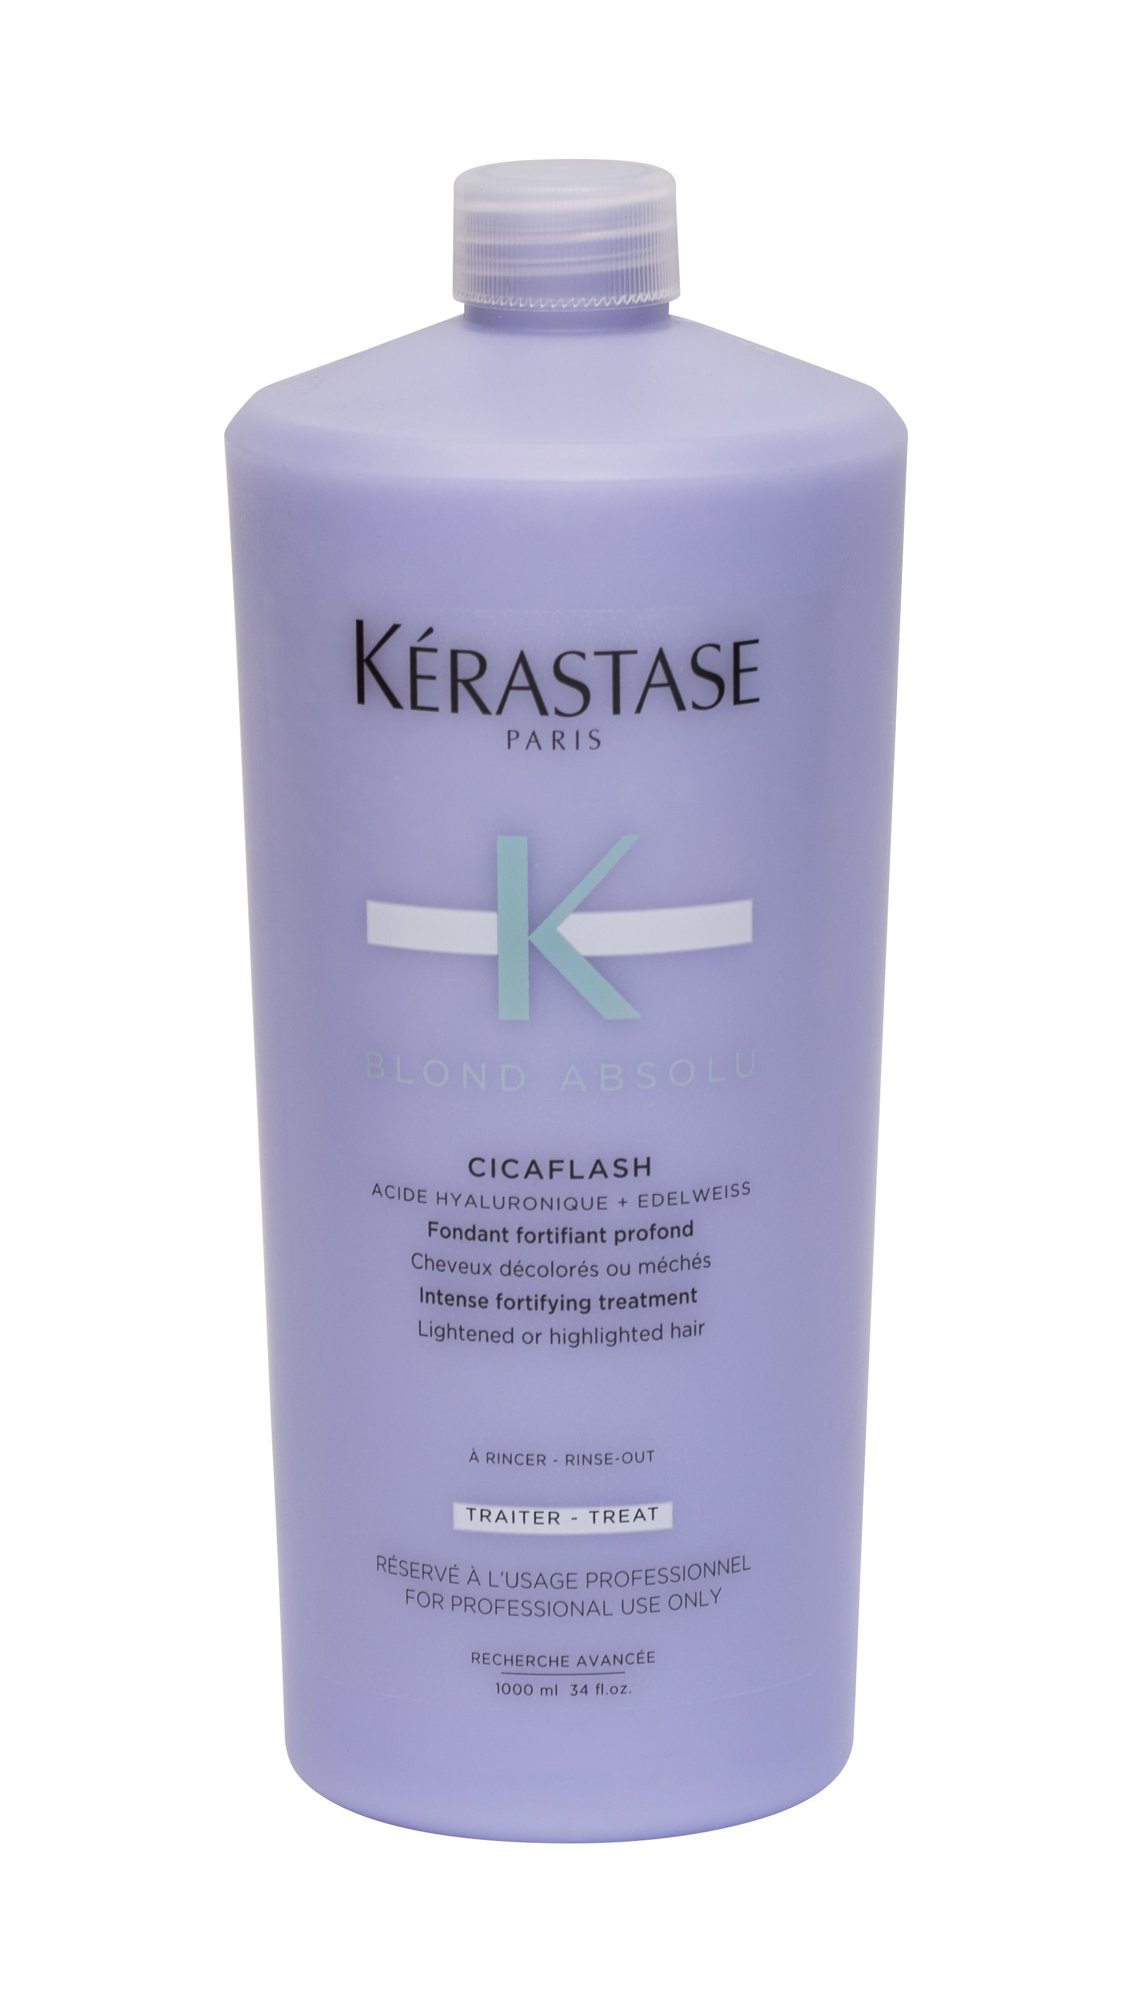 Kérastase Blond Absolu Hair Balm 1000ml  Cicaflash